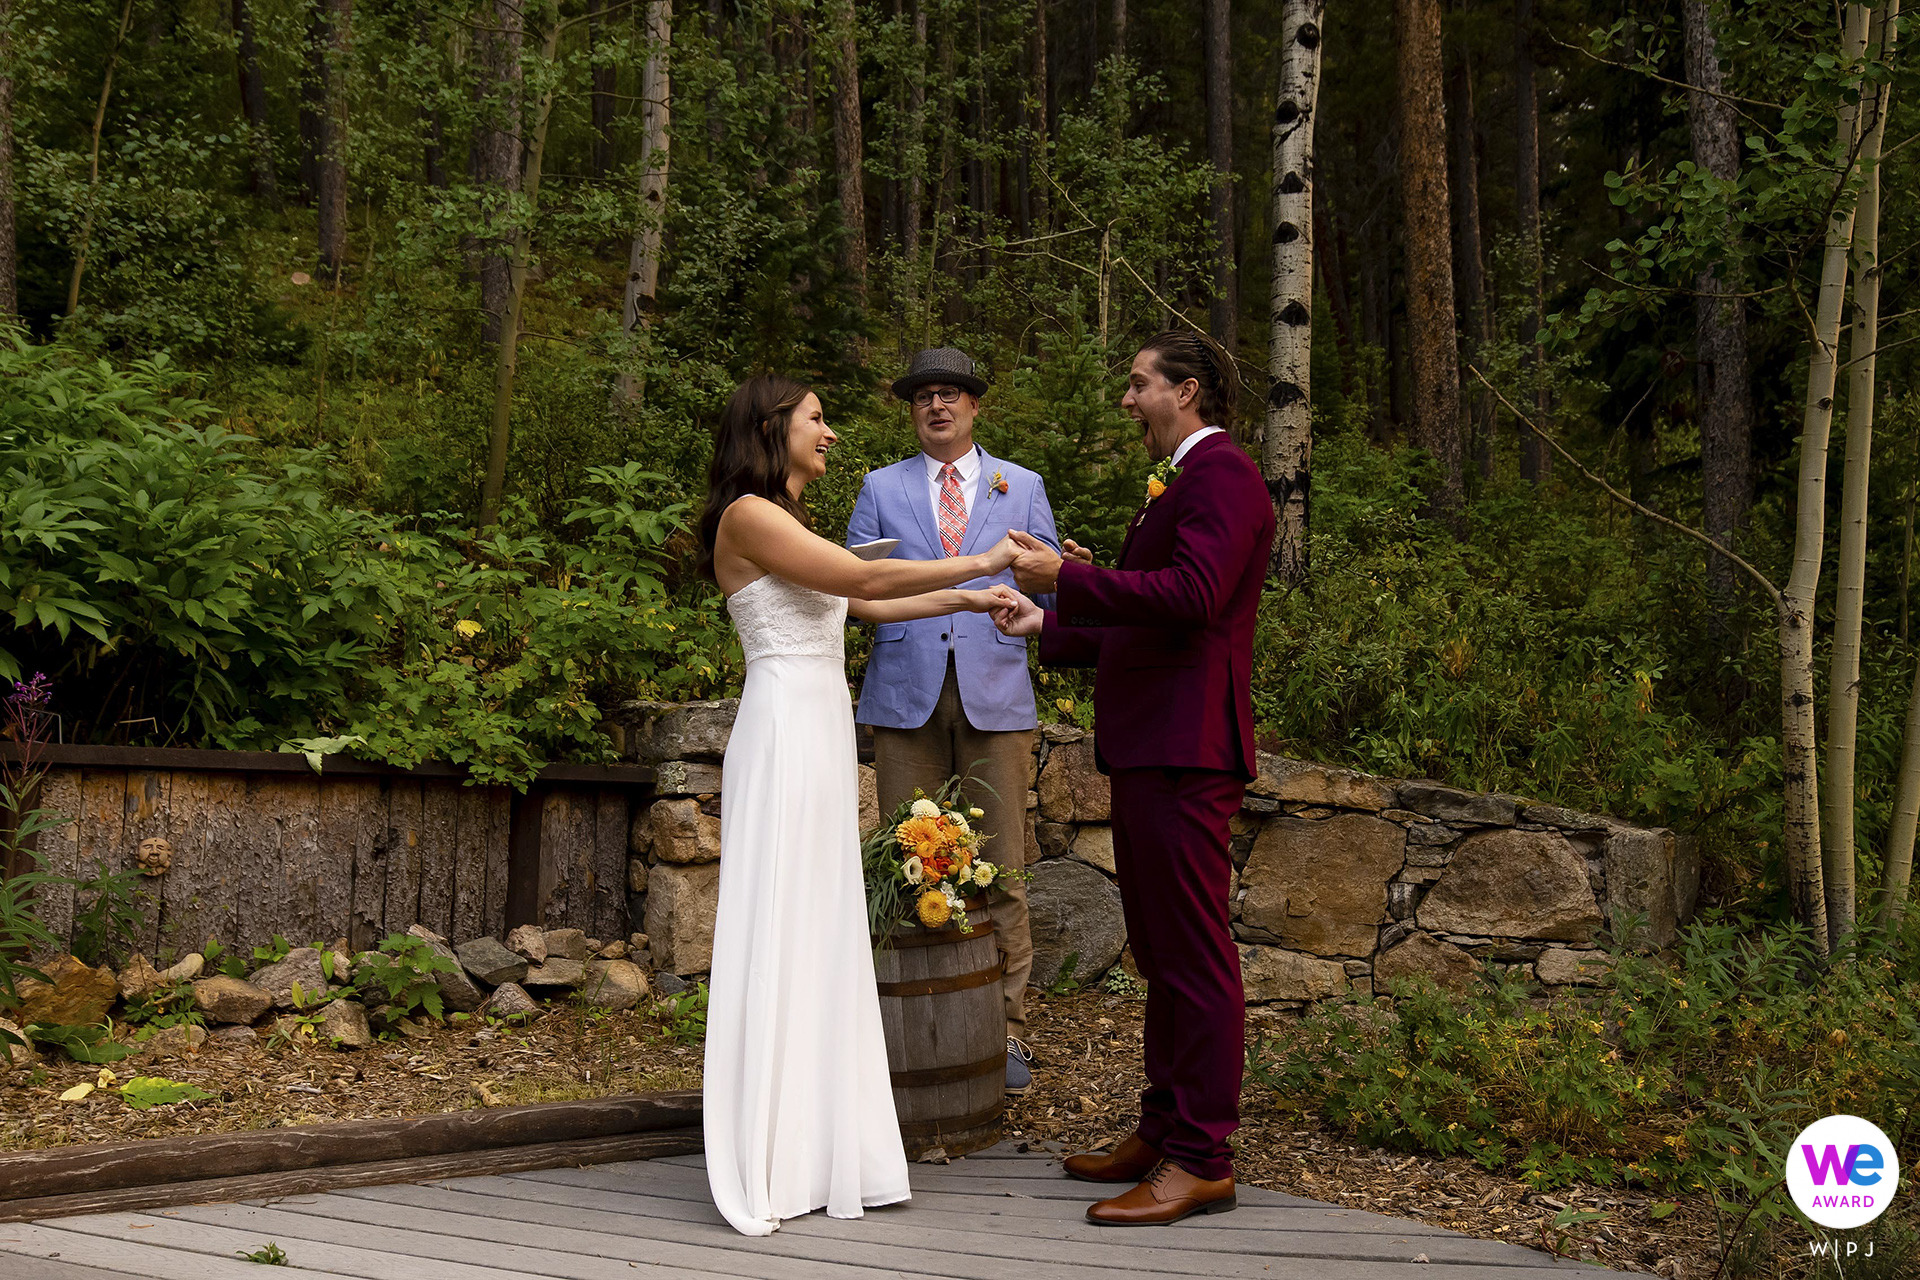 Black Hawk Backyard Elopement Photos | The couple are pronounced husband and wife